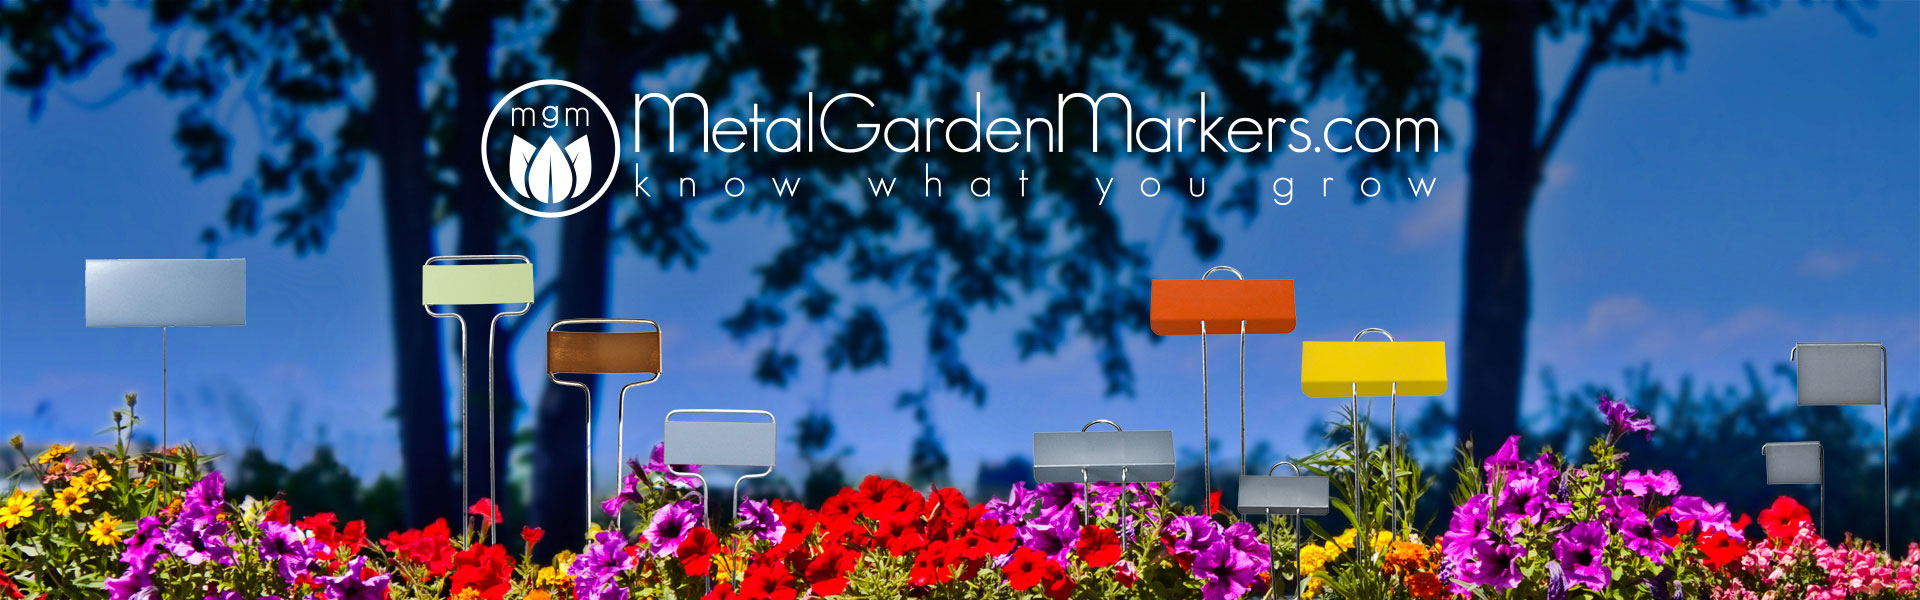 Metal Garden Markers - Know what you grow